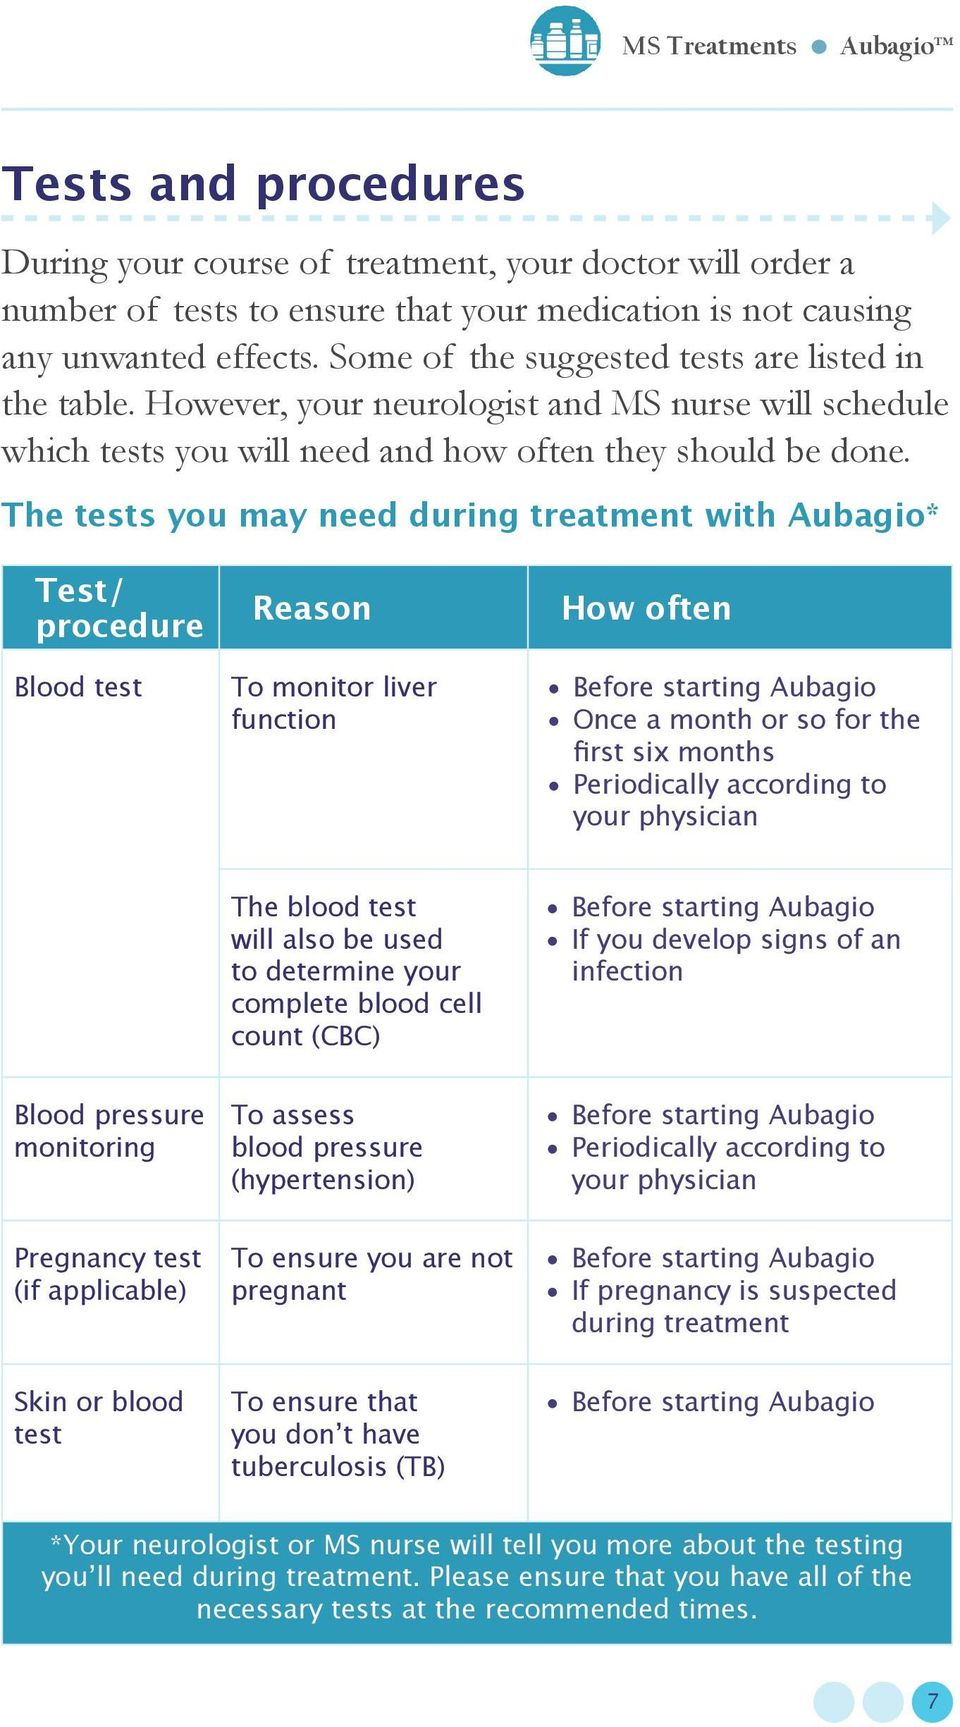 The tests you may need during treatment with Aubagio* Test/ procedure Blood test Reason To monitor liver function How often Before starting Aubagio Once a month or so for the first six months